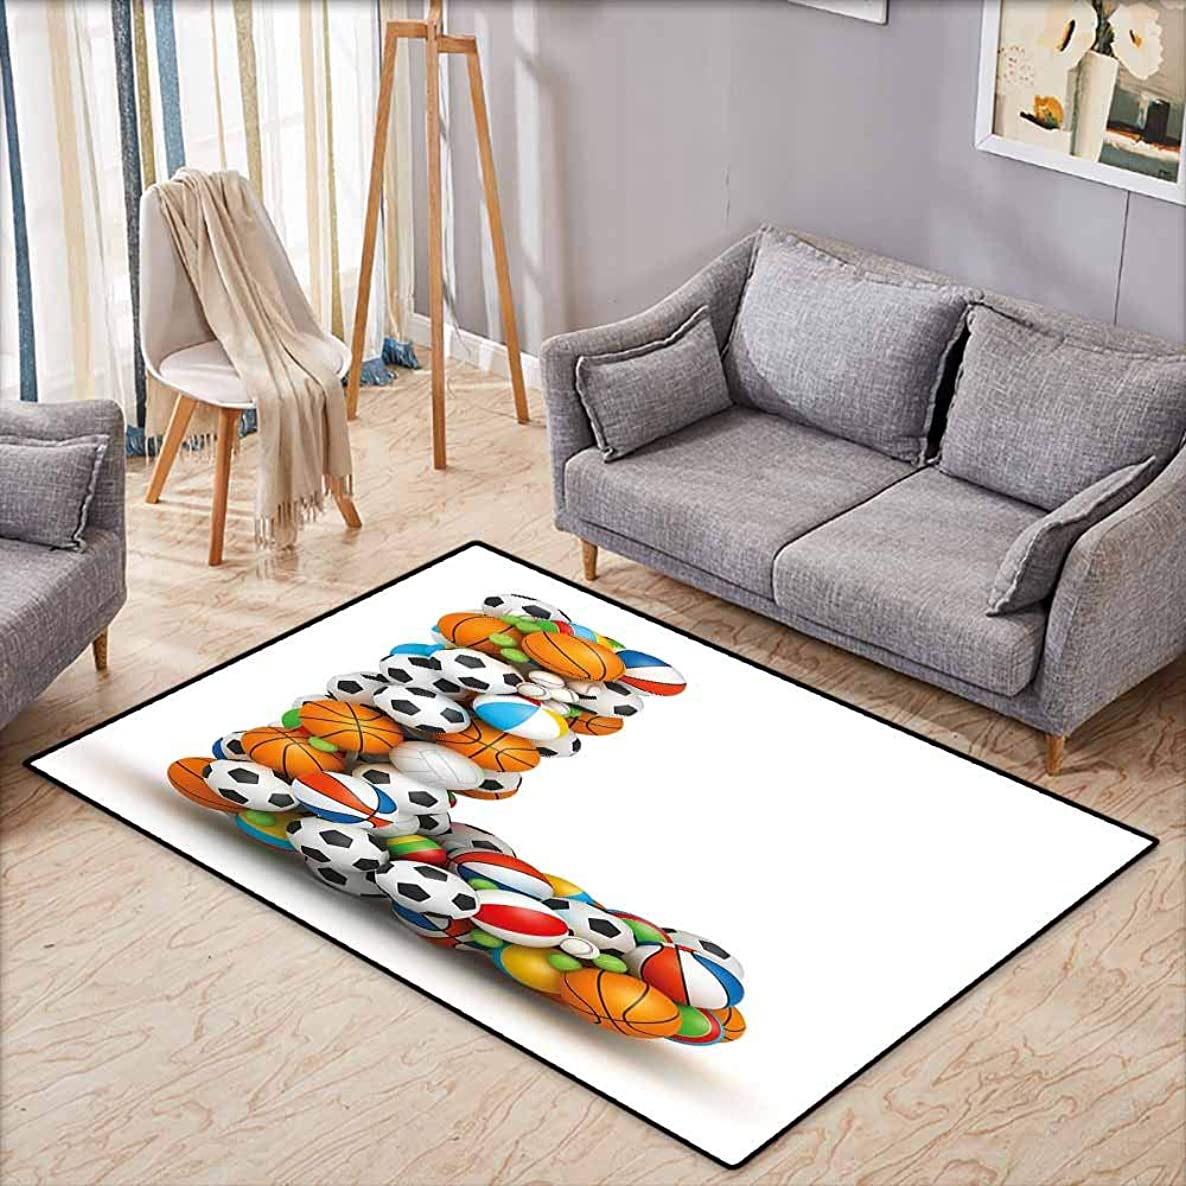 Living Room Rug,Letter L Basketball Football Volleyball Tennis Athleticism Teamplay Motivation Theme Print,Anti-Slip Doormat Footpad Machine Washable,3'11